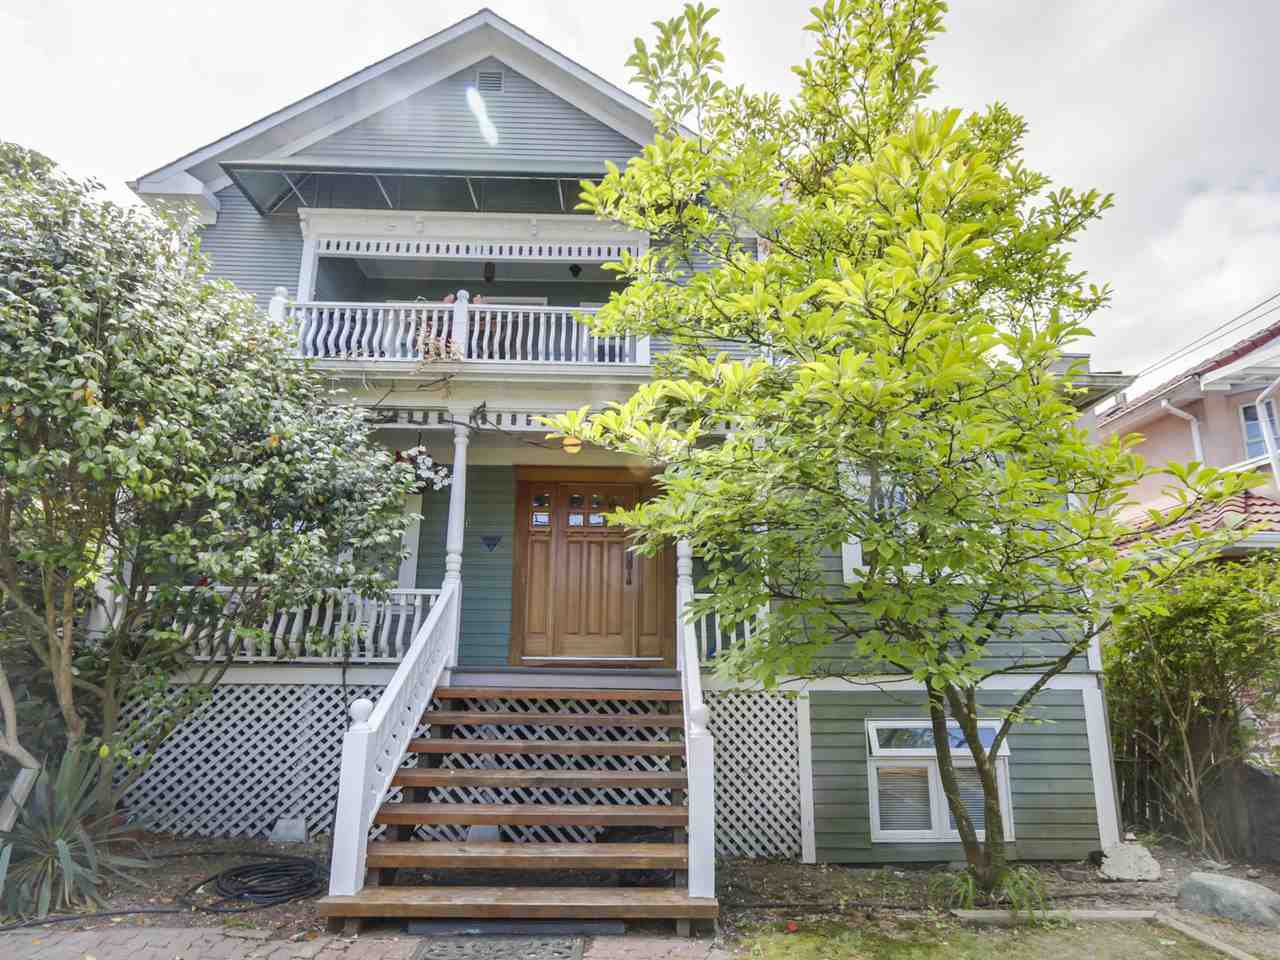 Main Photo: 786 E KING EDWARD Avenue in Vancouver: Fraser VE House for sale (Vancouver East)  : MLS®# R2245435